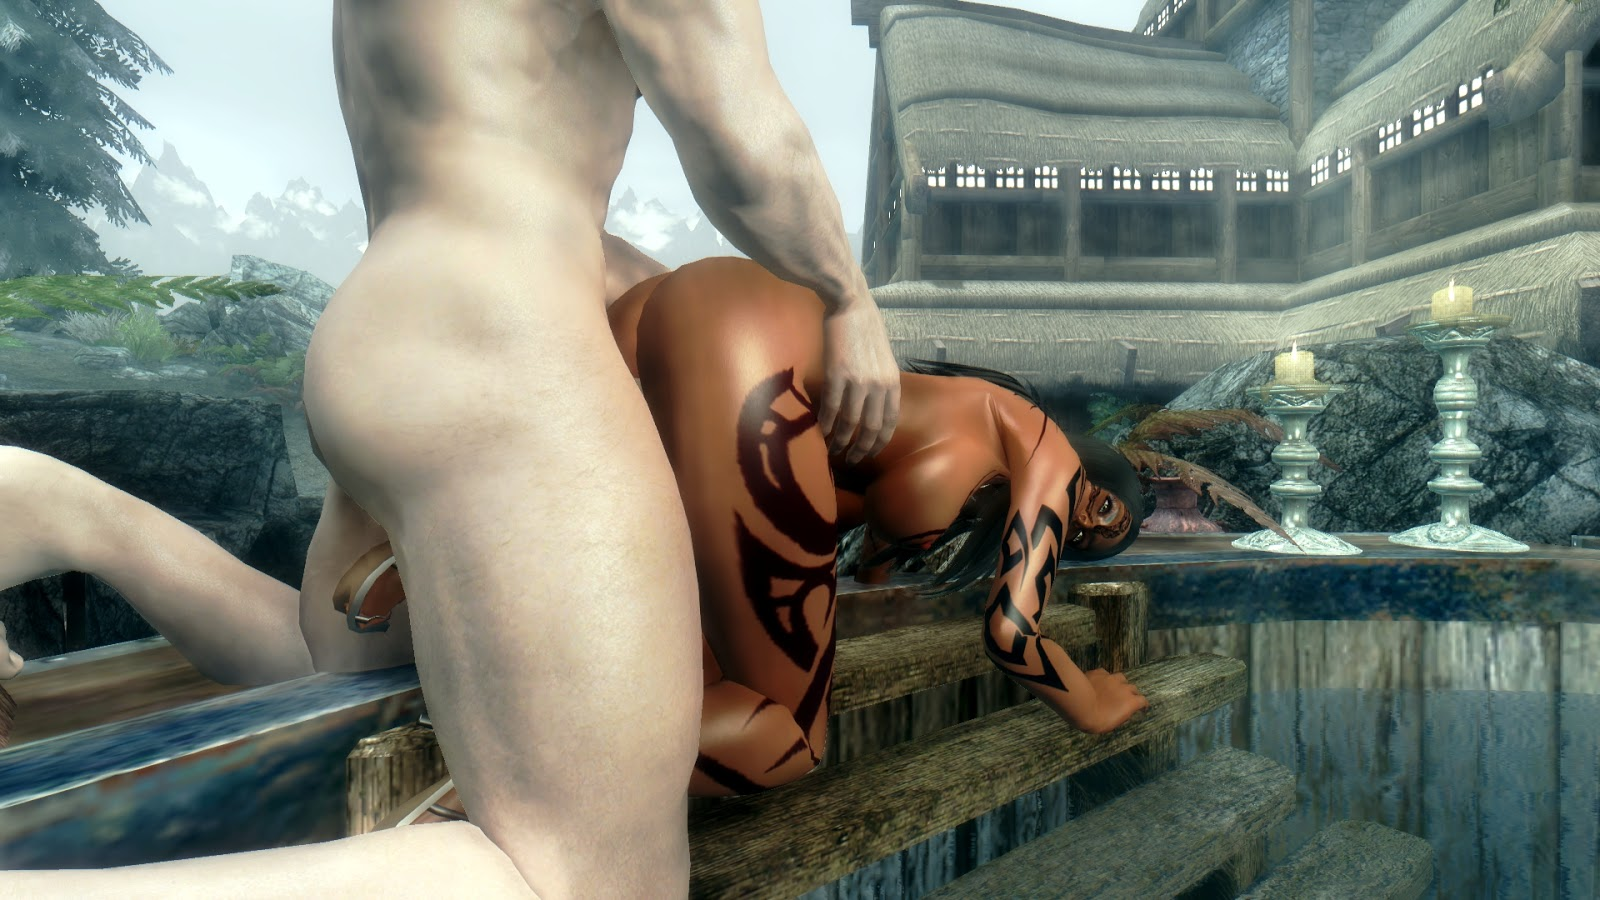 Skyrim adult-only mods sex hardcore smut pic